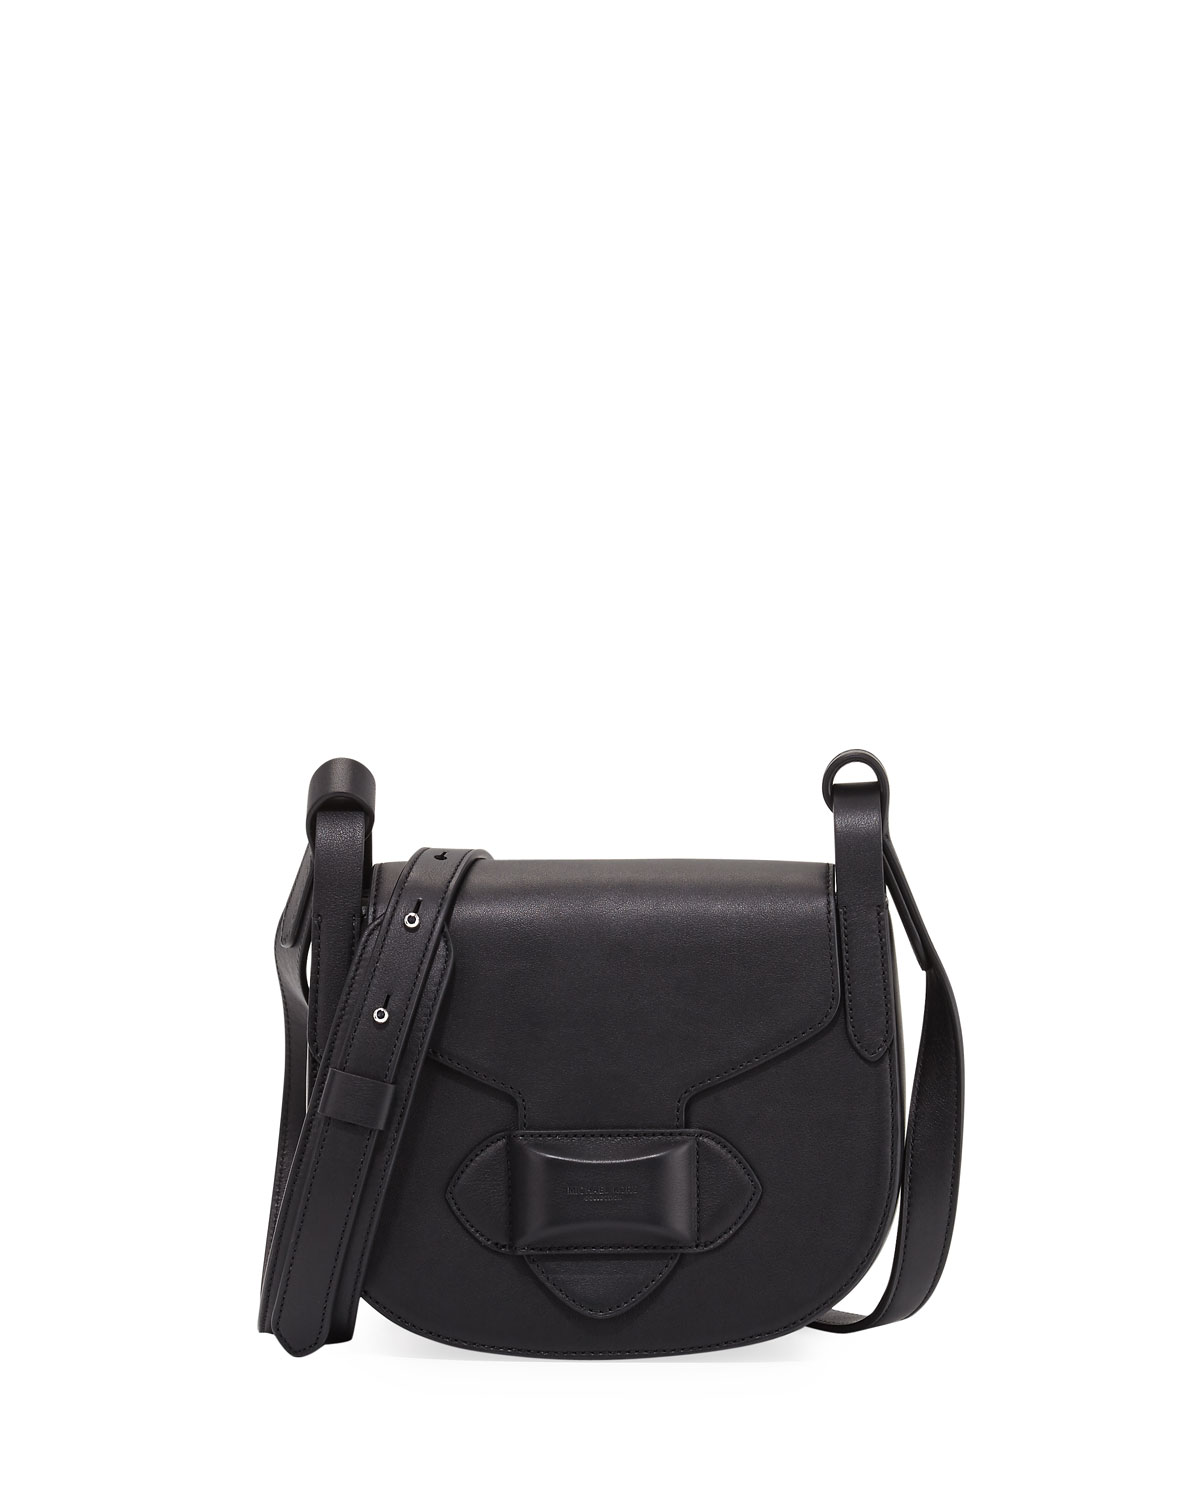 7a230333f0 Michael Kors Daria Small Leather Crossbody Bag, Black | Neiman Marcus